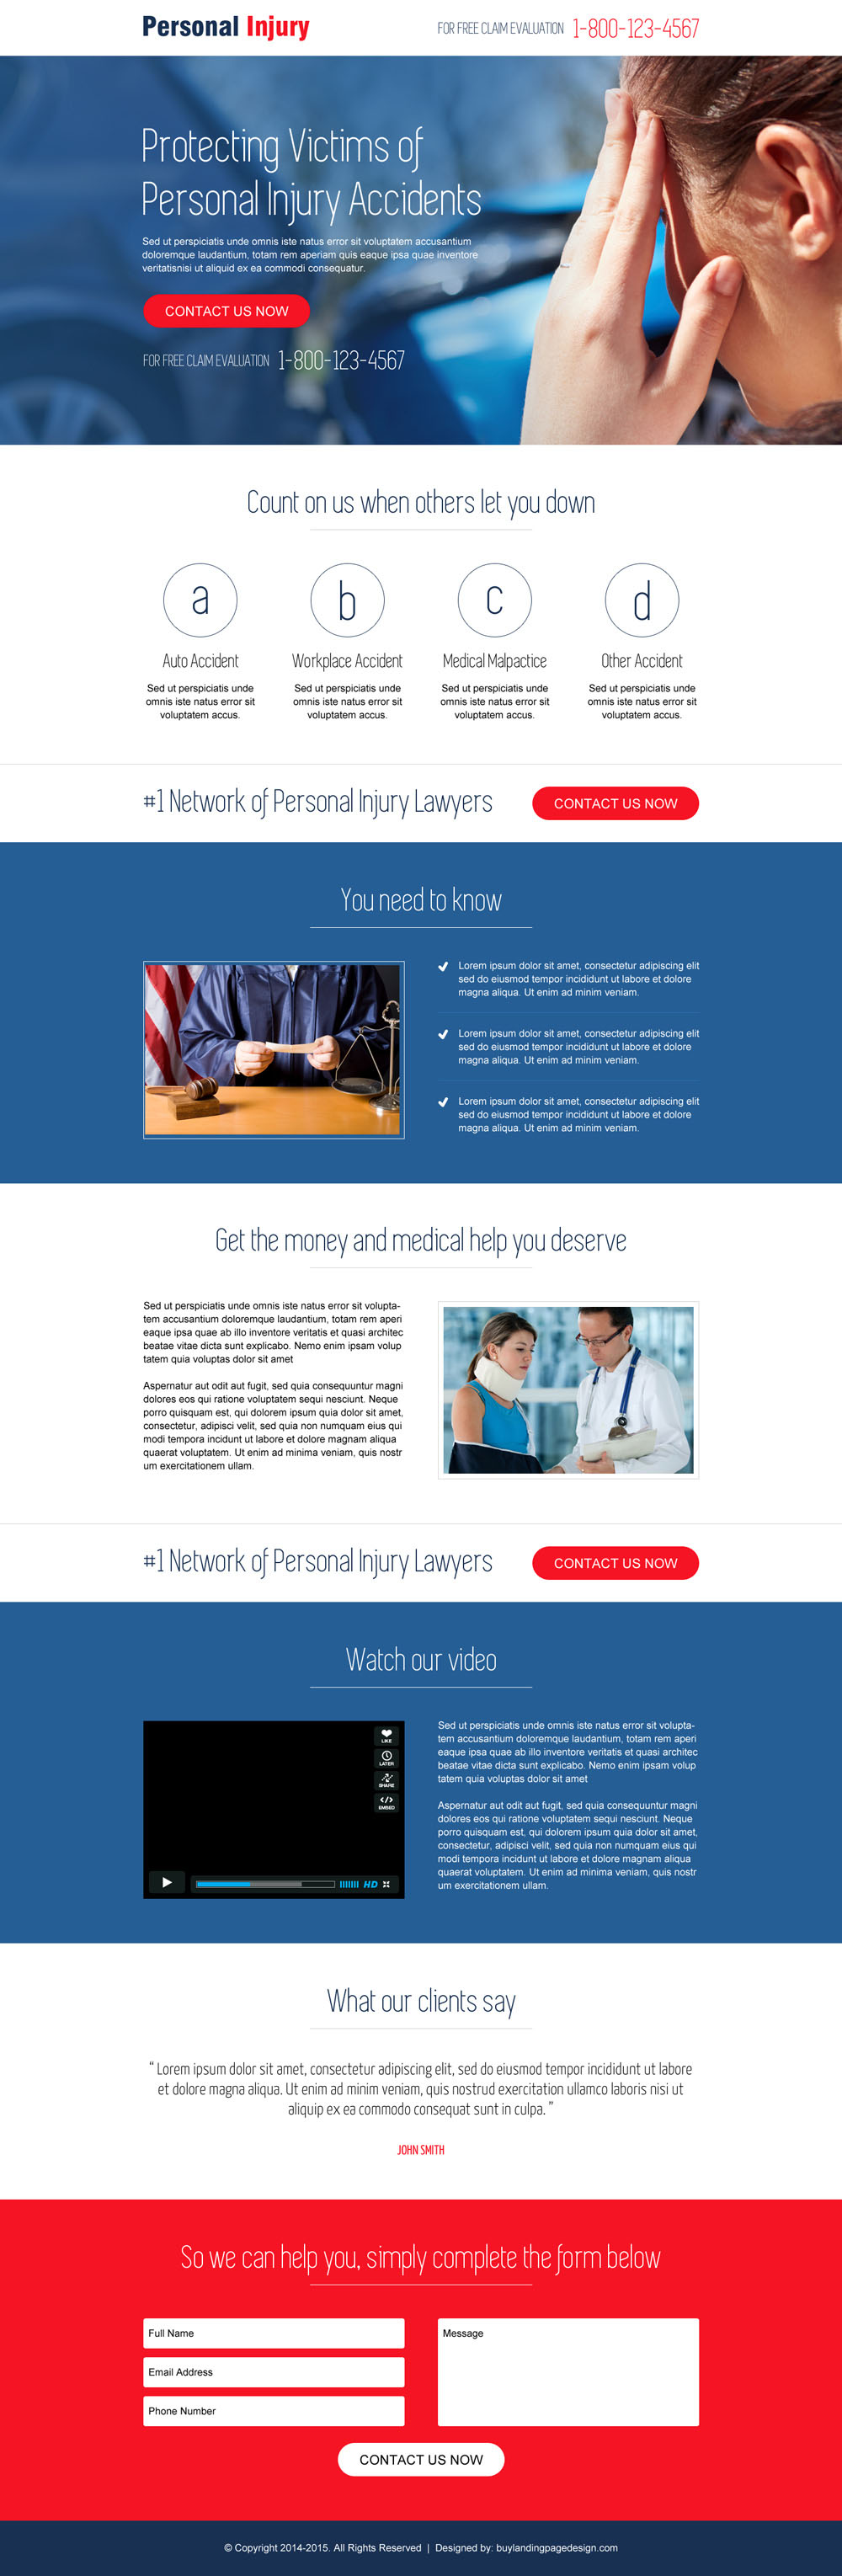 personal-injury-lead-capture-and-call-to-action-landing-page-design-template-001